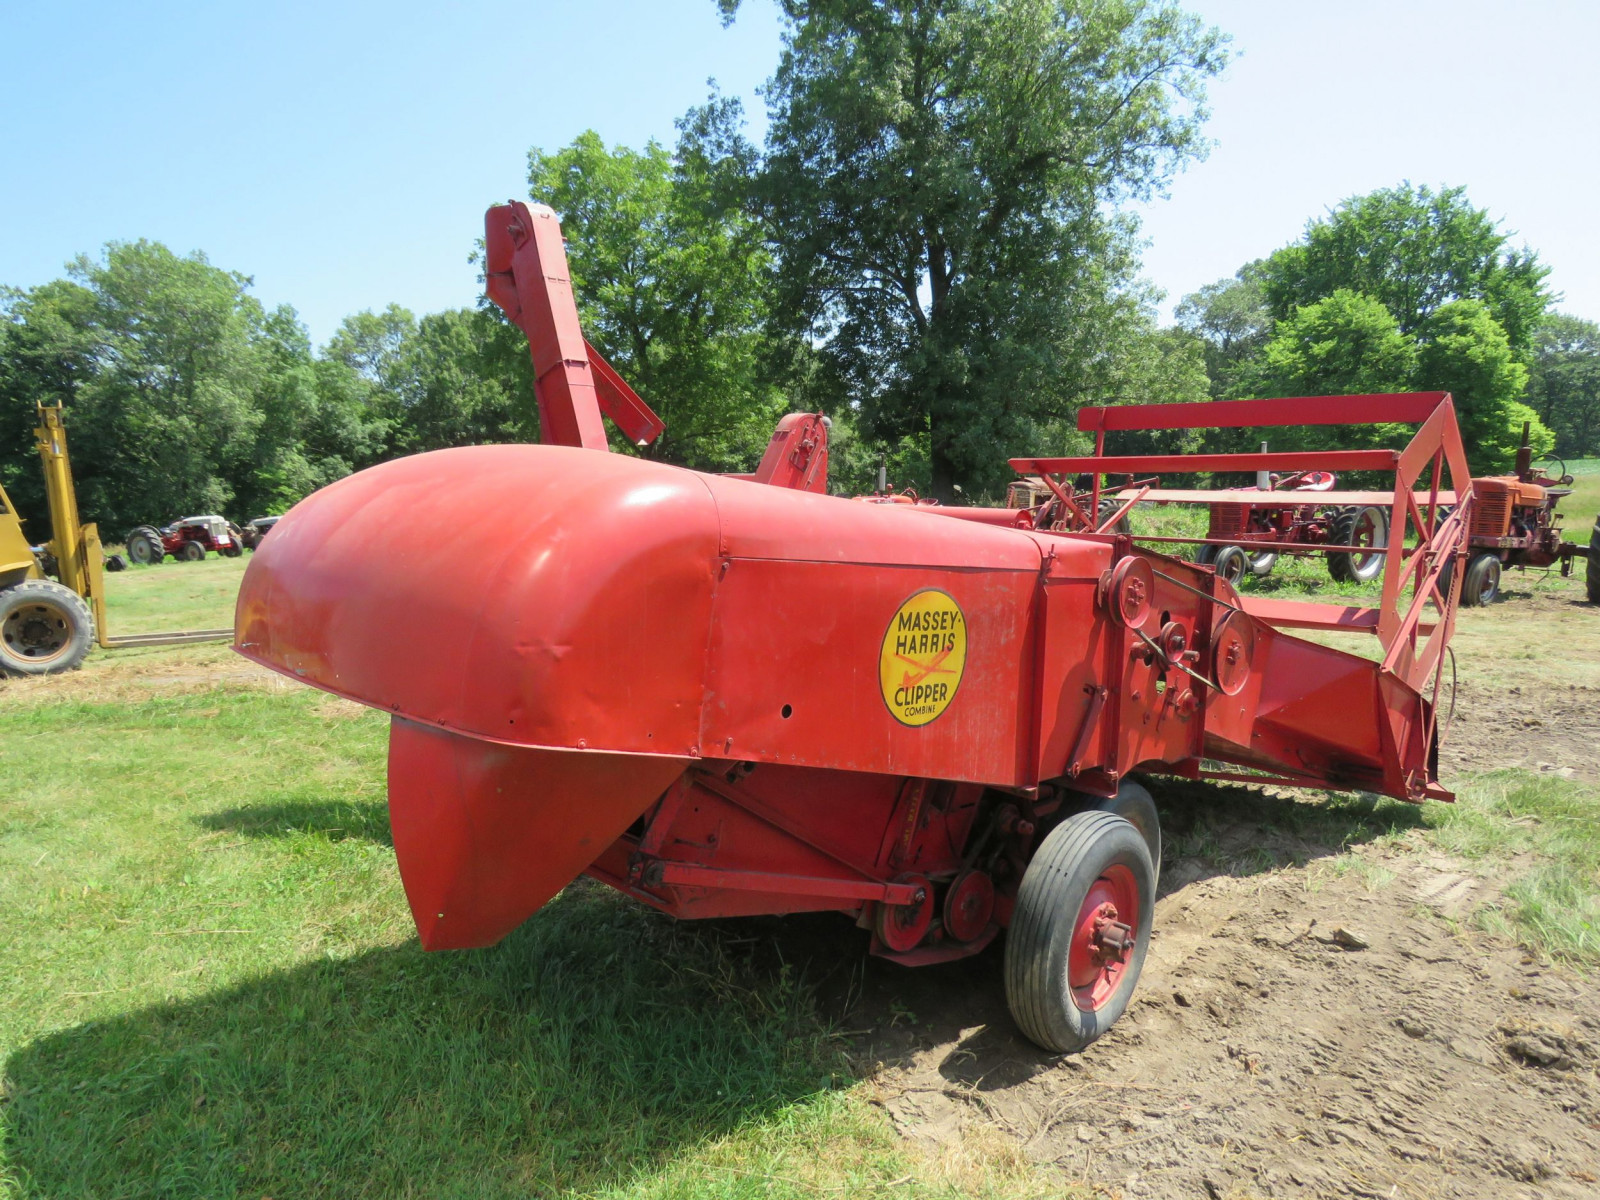 Massey Harris Clipper Combine - Image 4